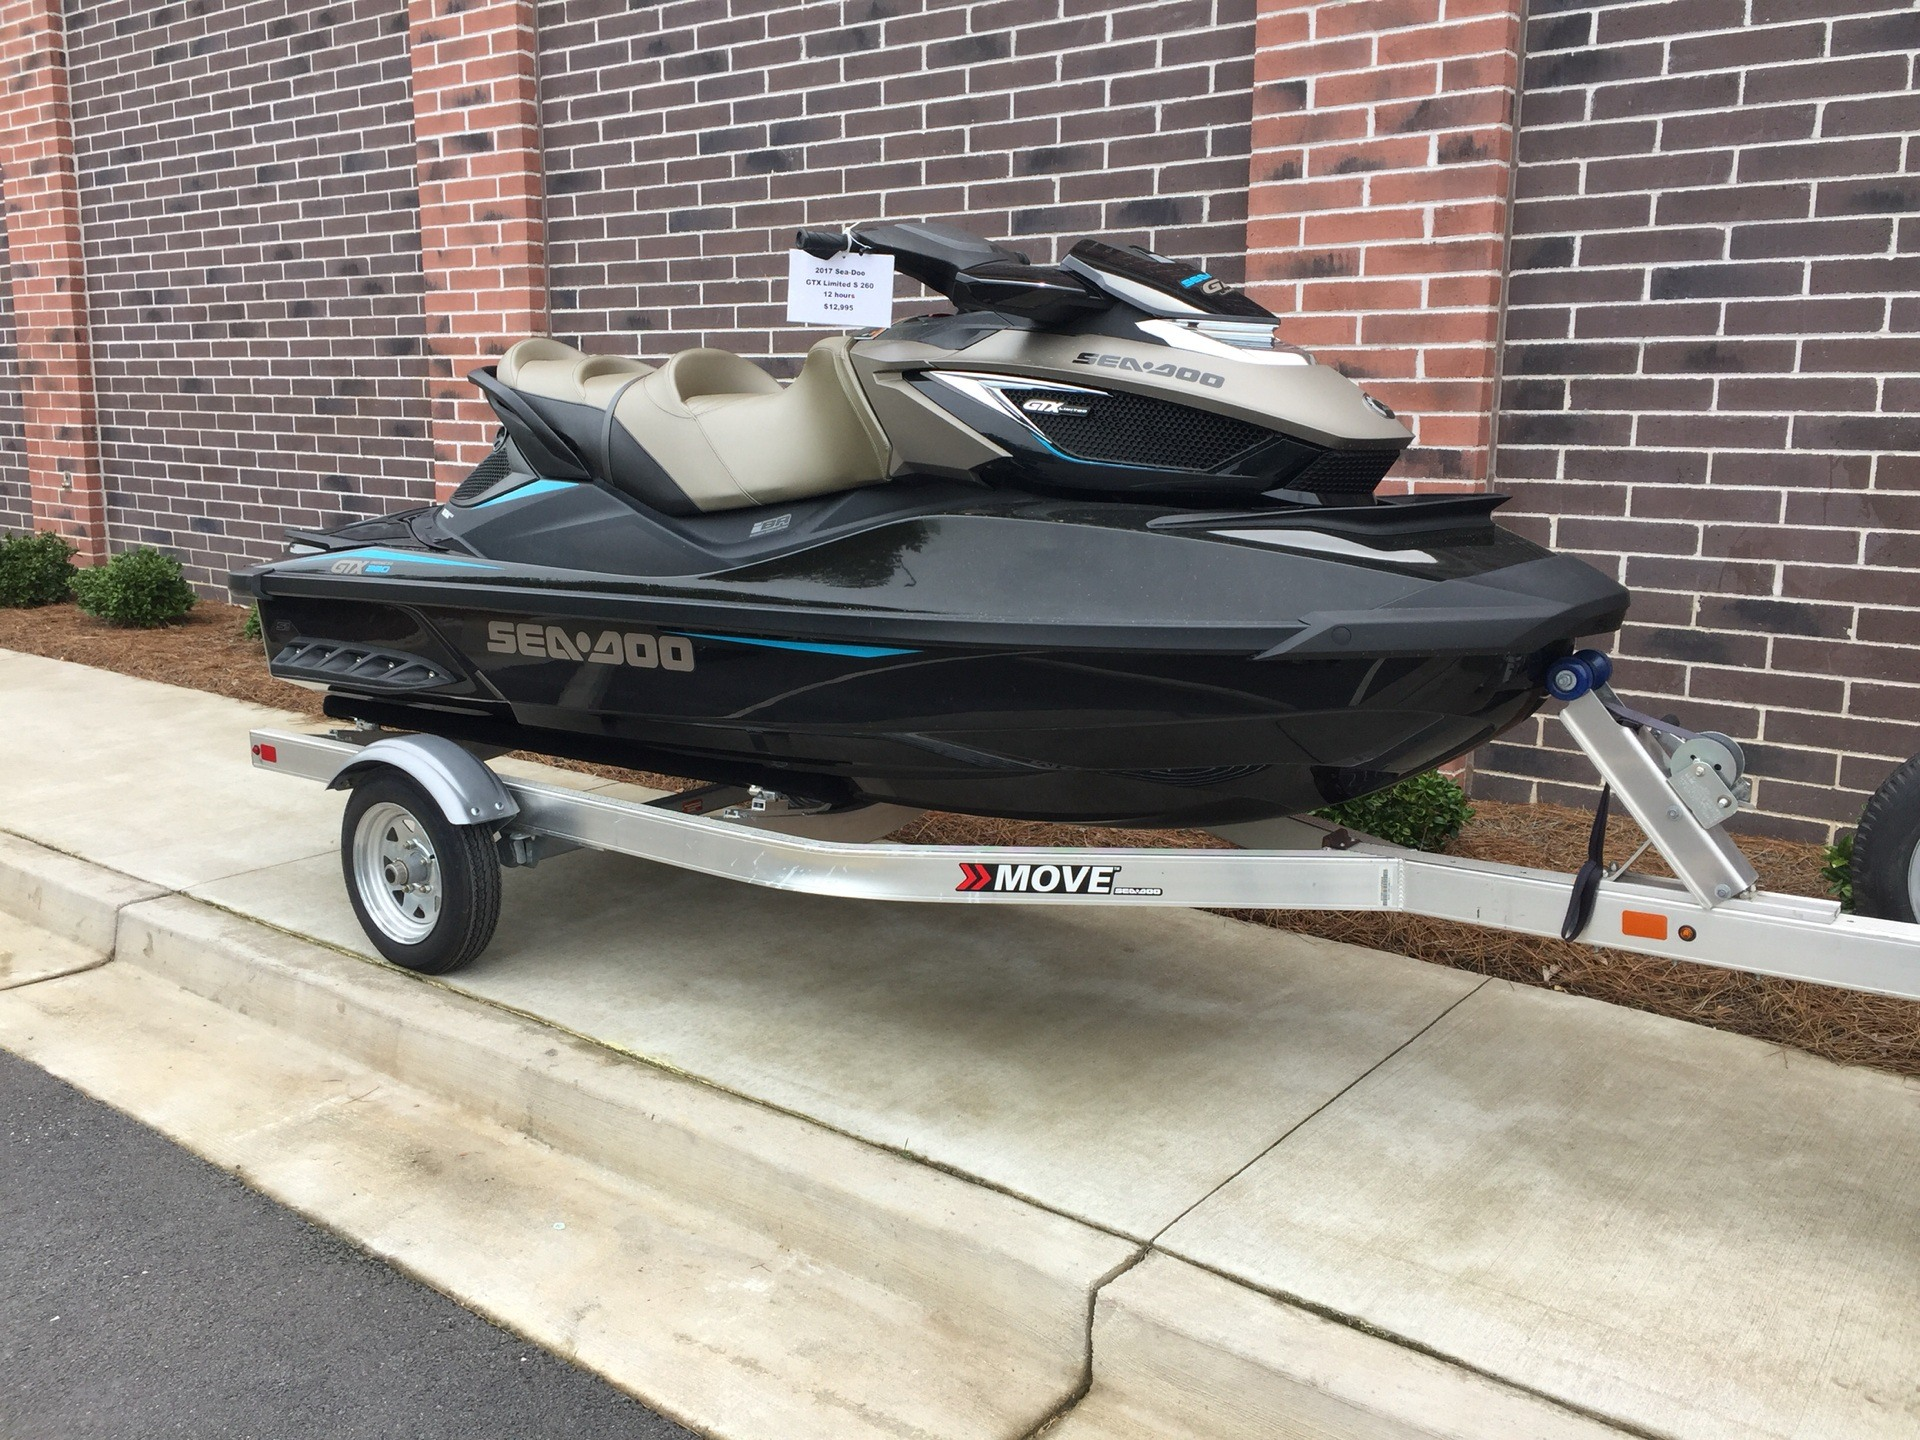 2017 Sea-Doo GTX Limited S 260 in Buford, Georgia